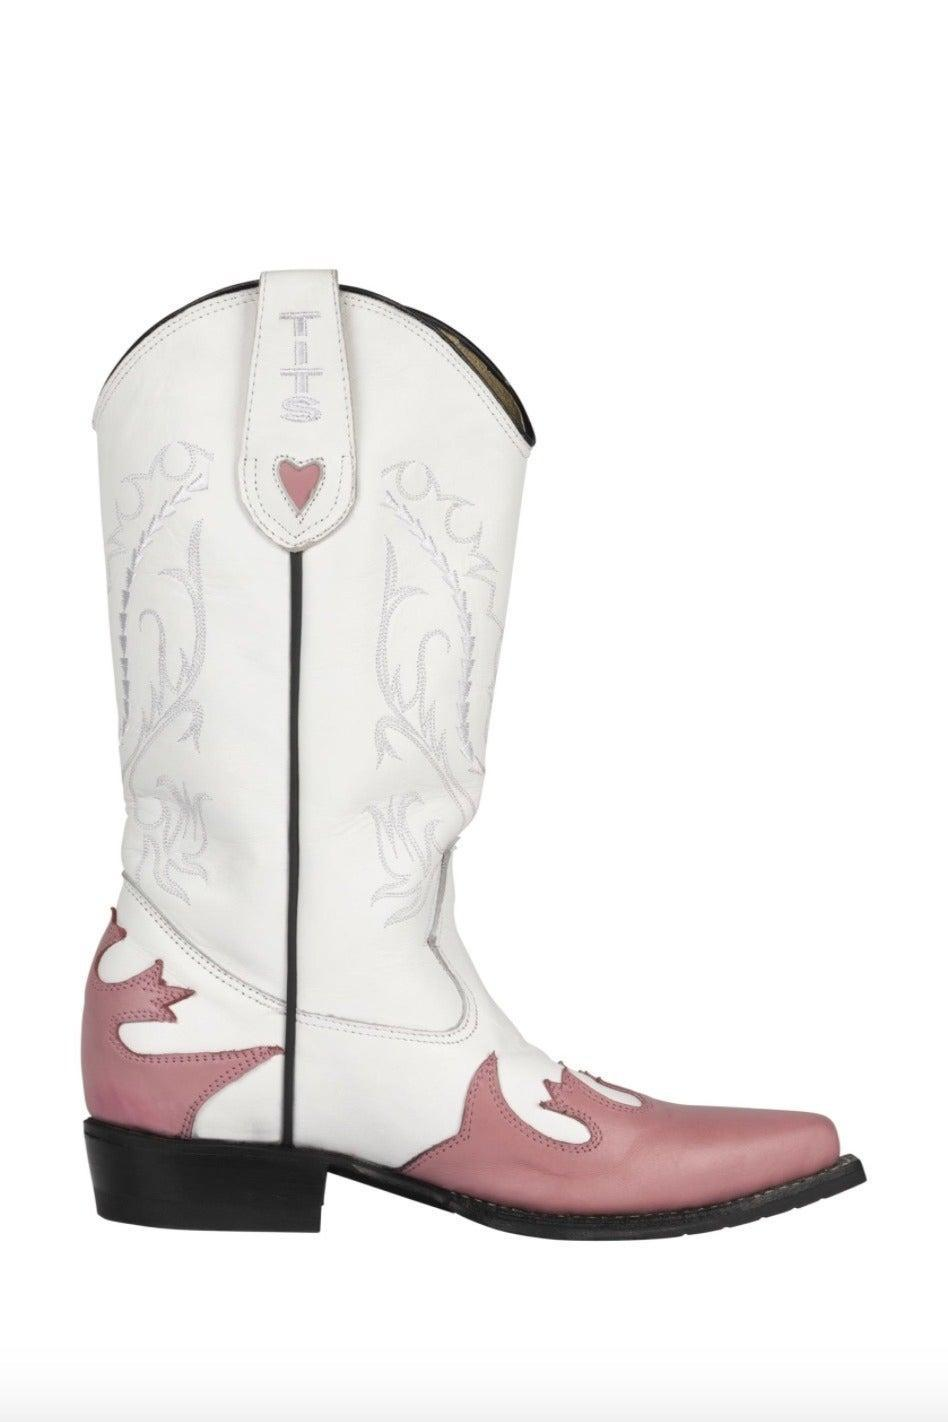 """<br><br><strong>Tits Store</strong> Jolene Boots, $, available at <a href=""""https://www.tits-store.com/jolene-boots.html"""" rel=""""nofollow noopener"""" target=""""_blank"""" data-ylk=""""slk:Tits Store"""" class=""""link rapid-noclick-resp"""">Tits Store</a>"""